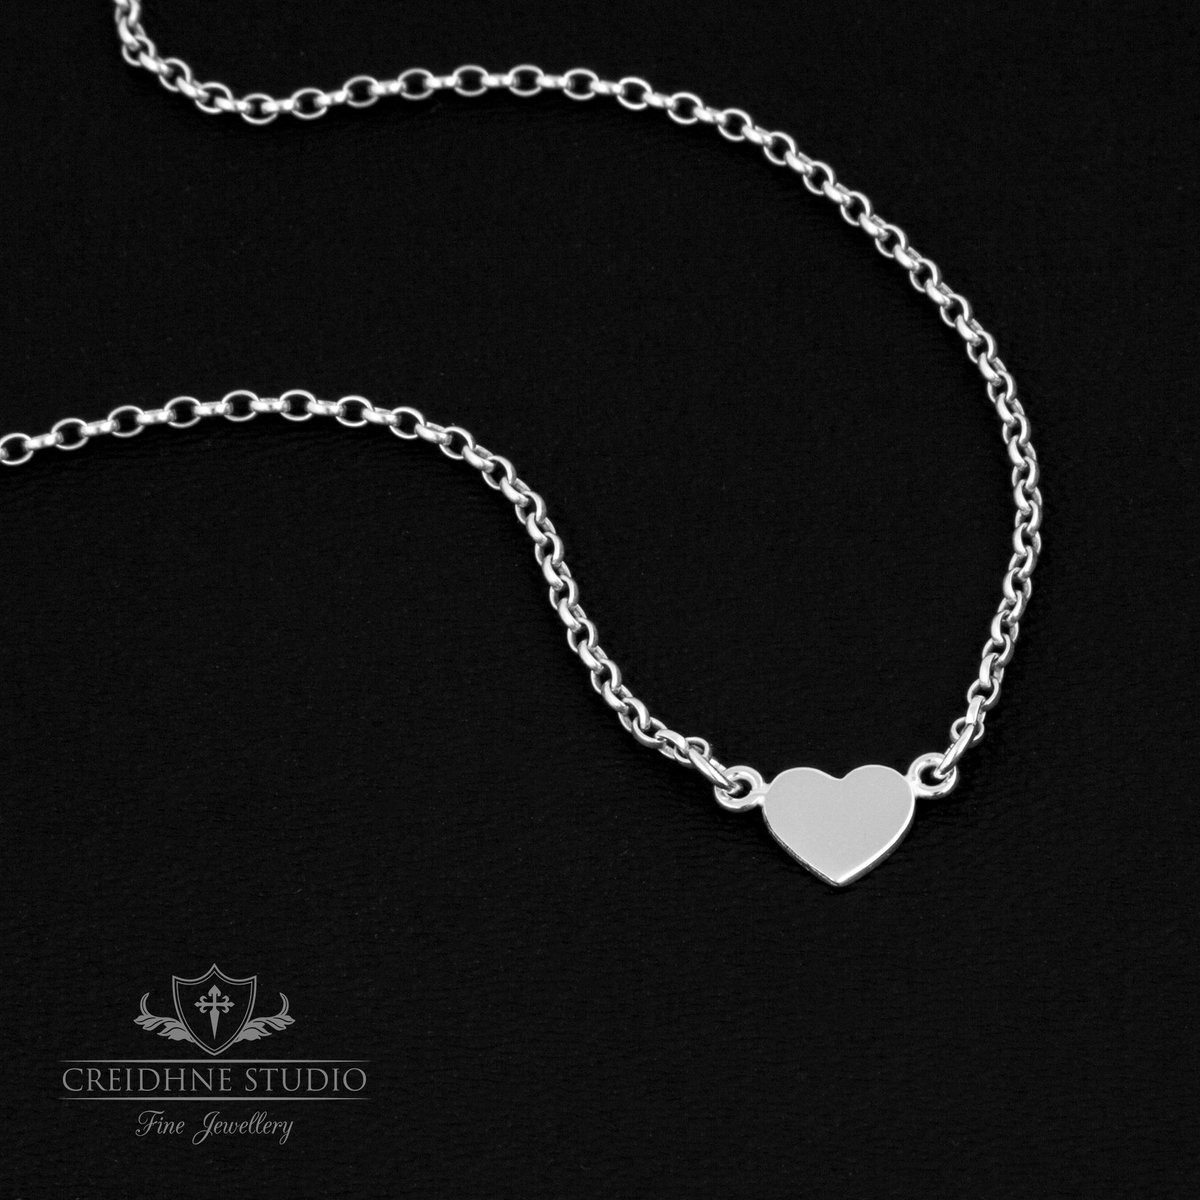 Tiny Heart Day Collar, Sterling Silver, very delicate and discreet day collar  BUY NOW:   SHOP:   #gothgirl #goth #necklace #ddlgcollar #daycollar #discreet #sterlingsilver #alternativestyle #heart